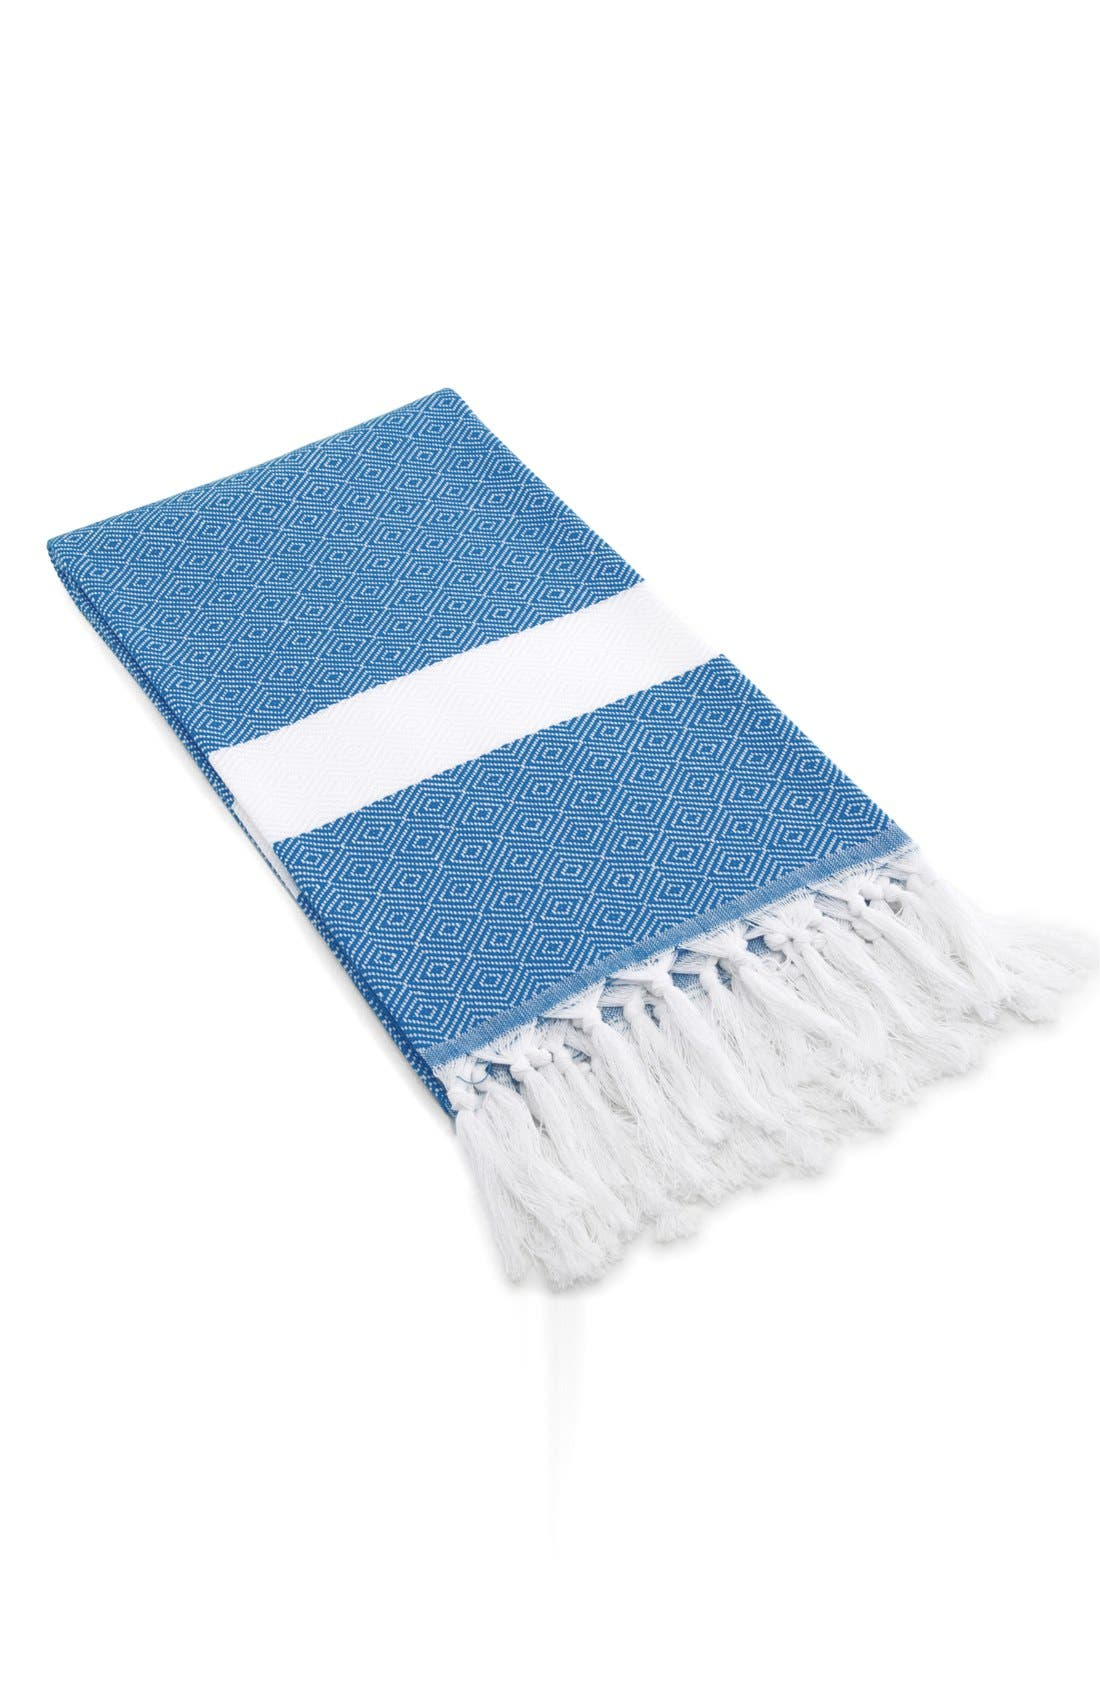 Linum Home Textiles 'Diamond' Turkish Pestemal Towel